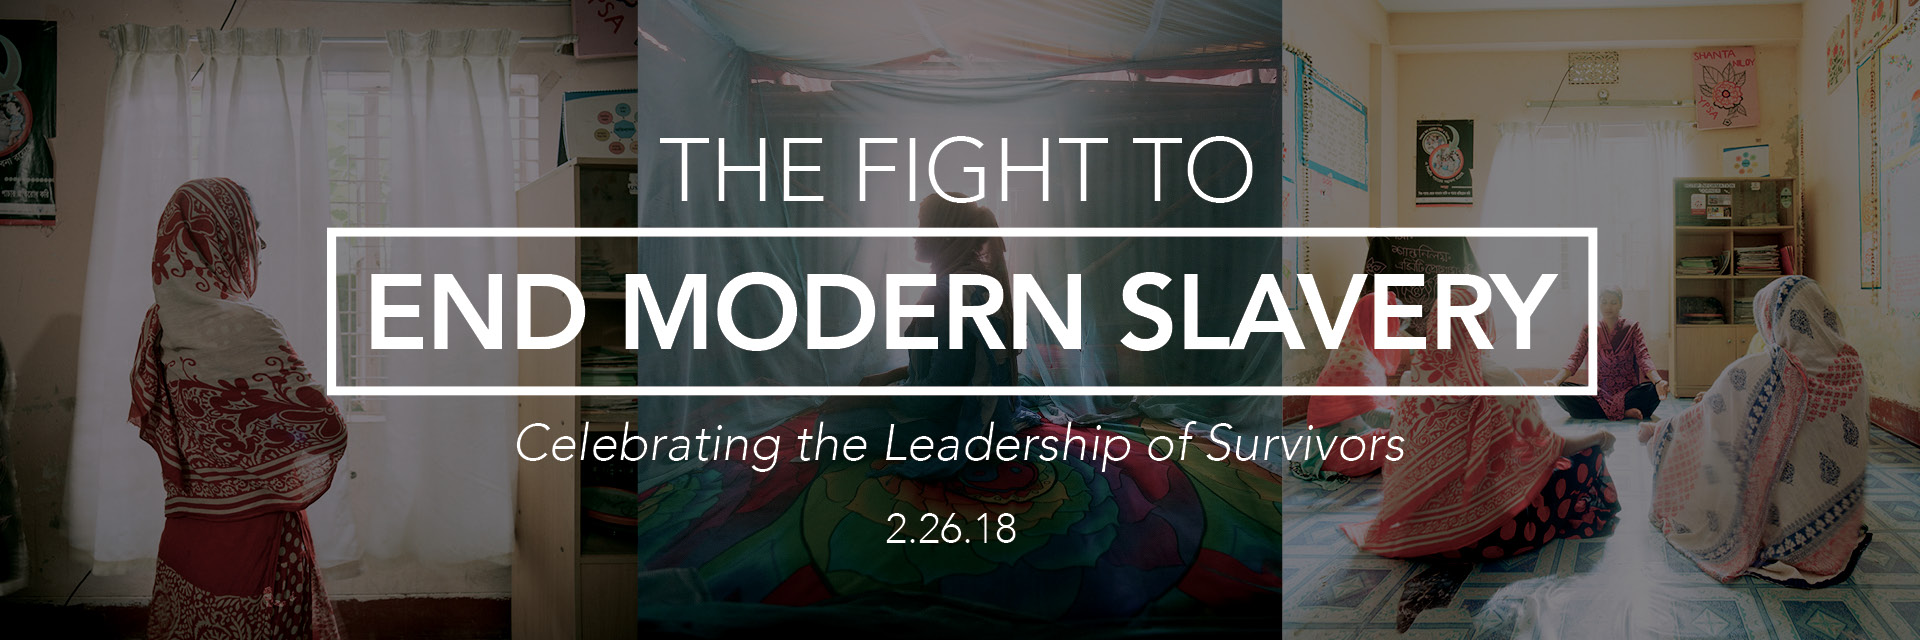 The Fight to End Modern Slavery: Celebrating the Leadership of Survivors